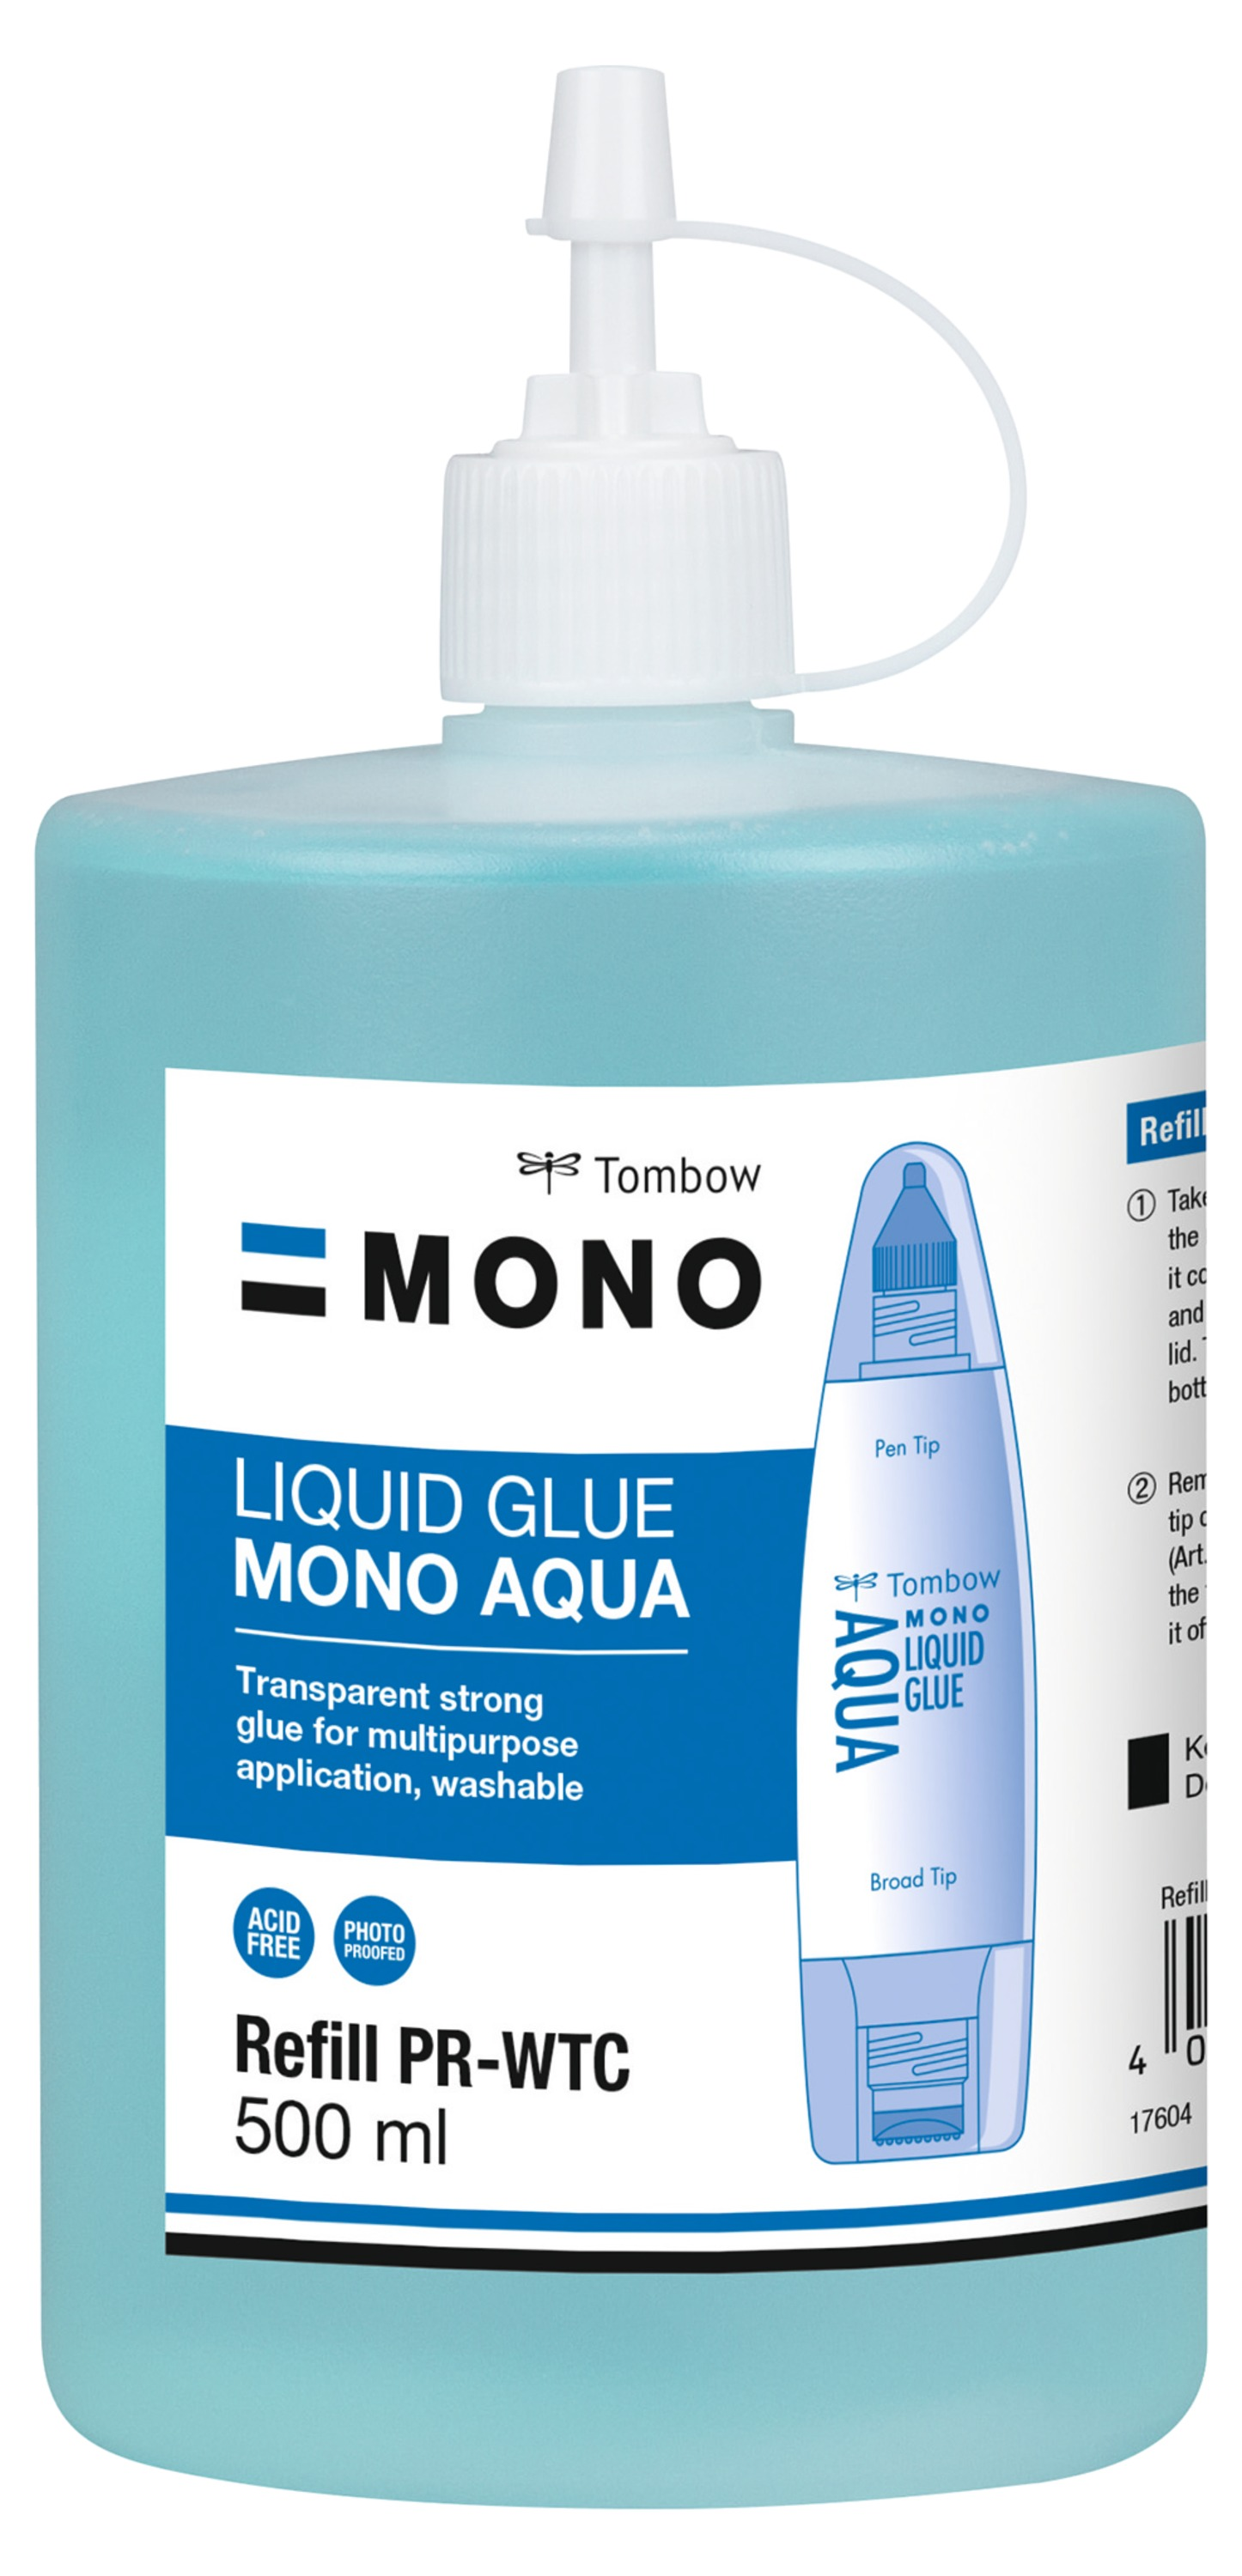 Strong Glues Tombow Refill for Liquid Glue PT-WTC 500ml Washable